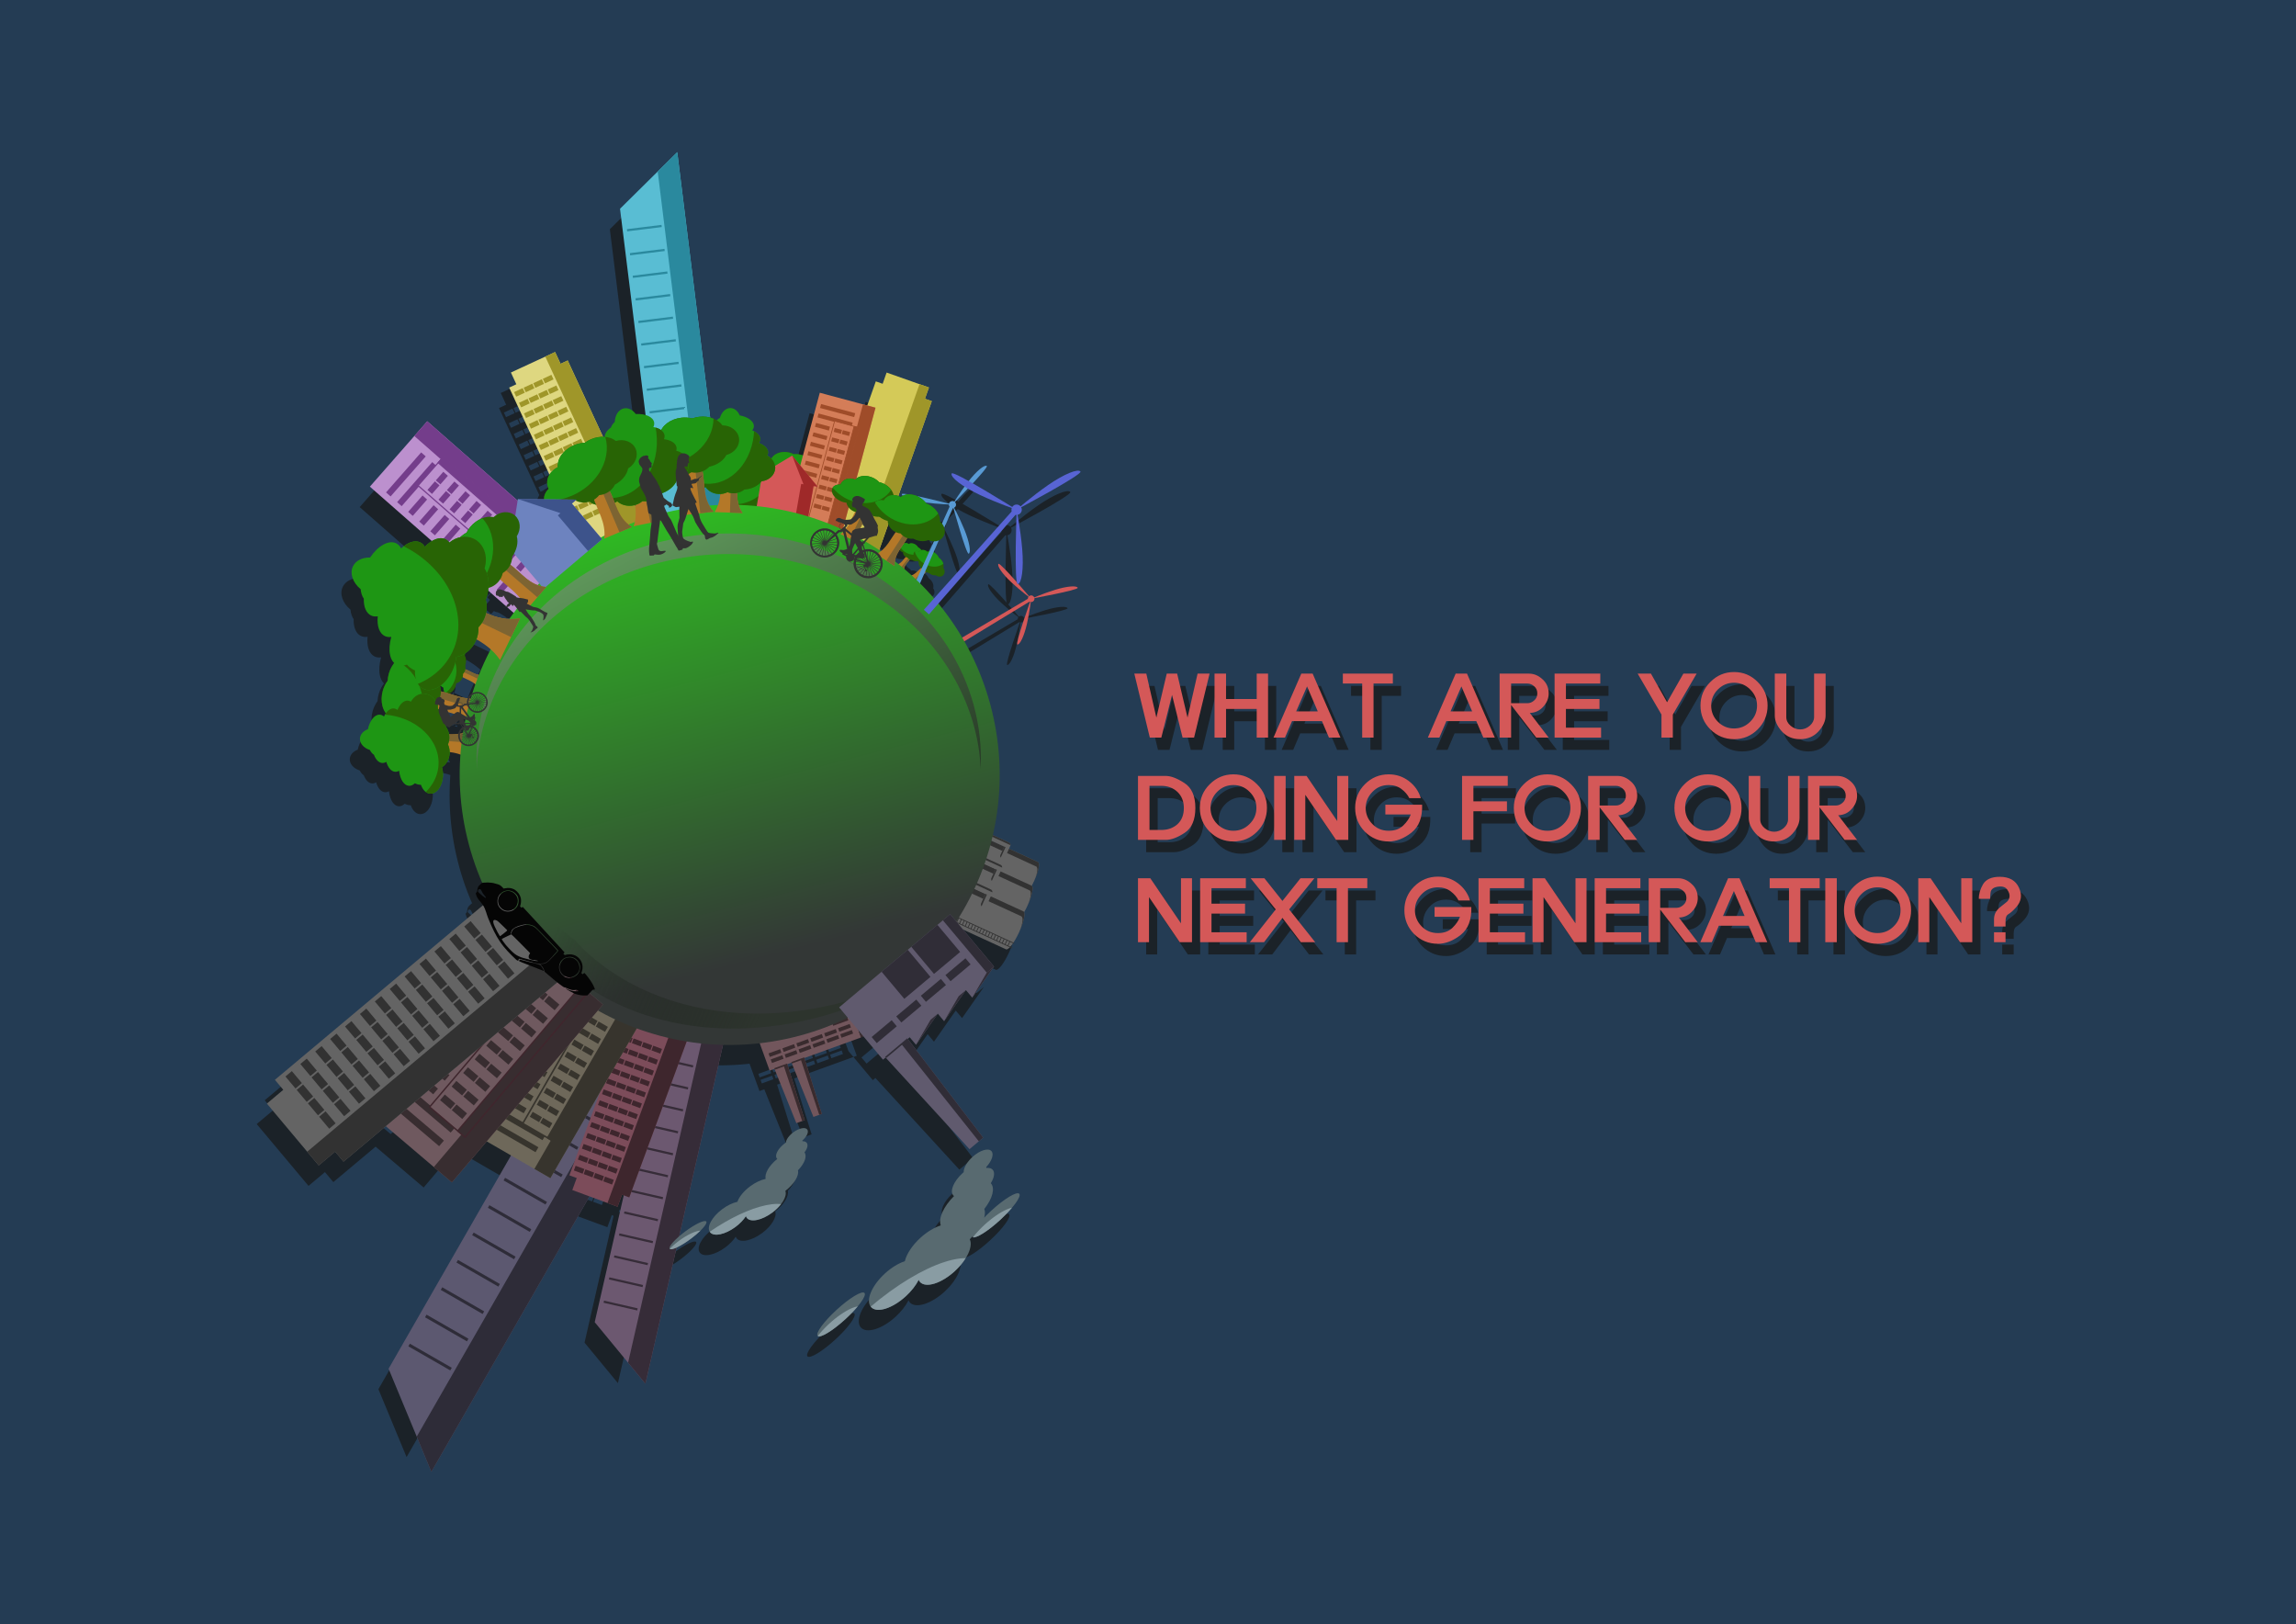 007 What are you doing for our next generation.png